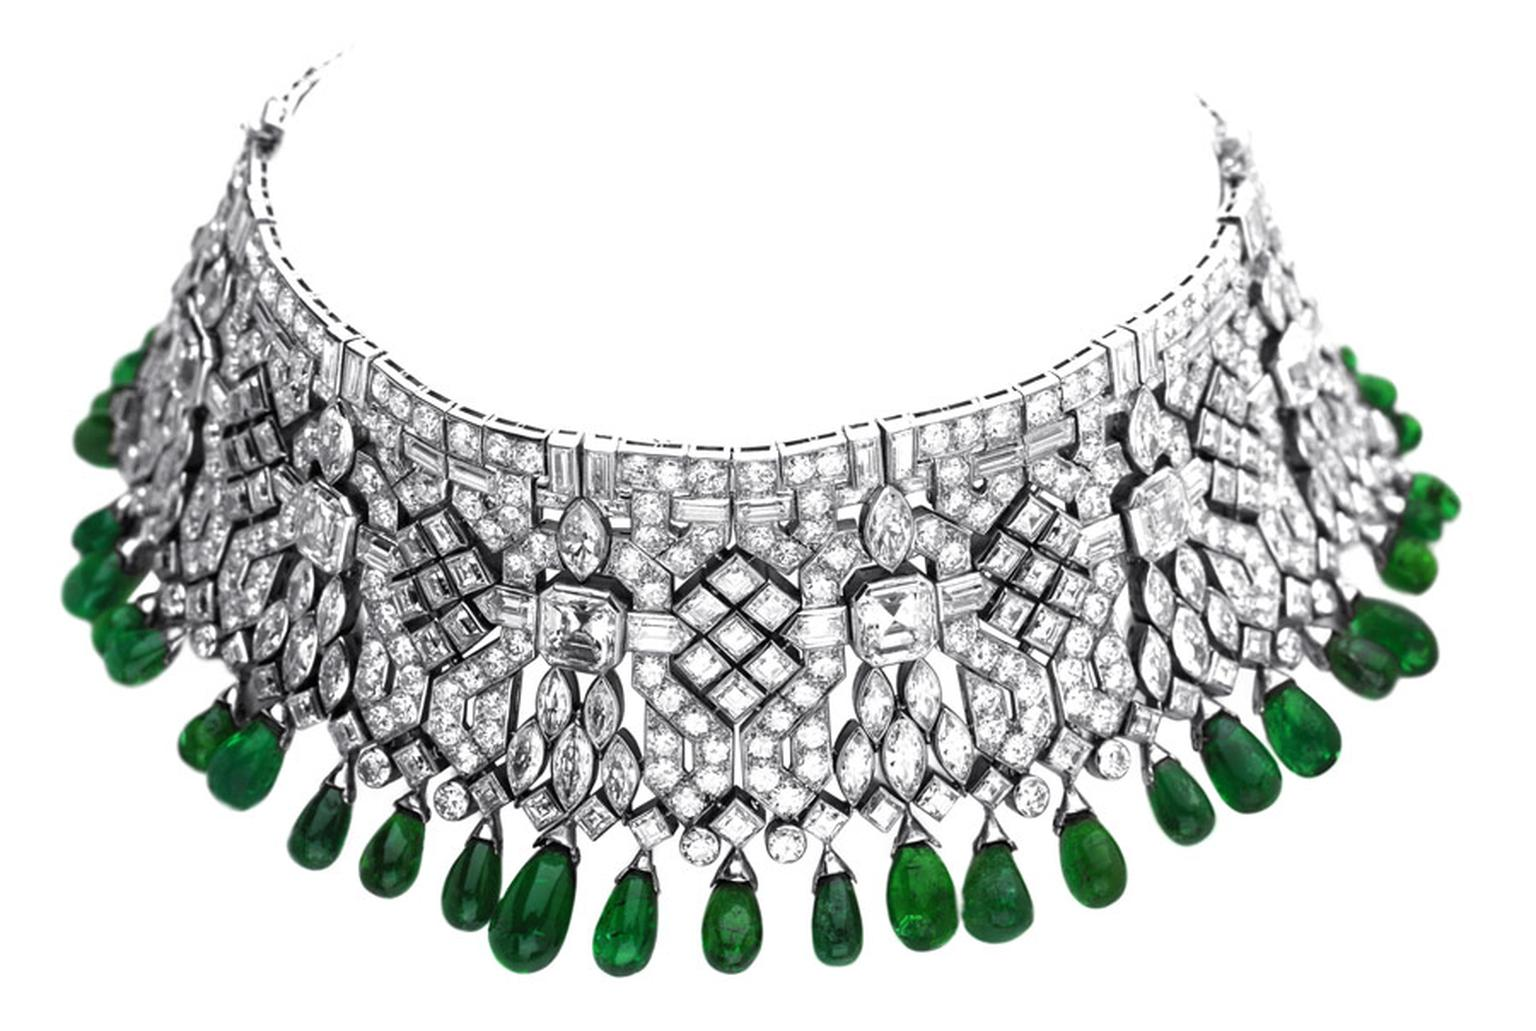 Van-Cleef-Arpels-Indian-bracelets-transformable-into-a-choker-ordered-by-Daisy-Fellowes-1928-Private-Collection_3